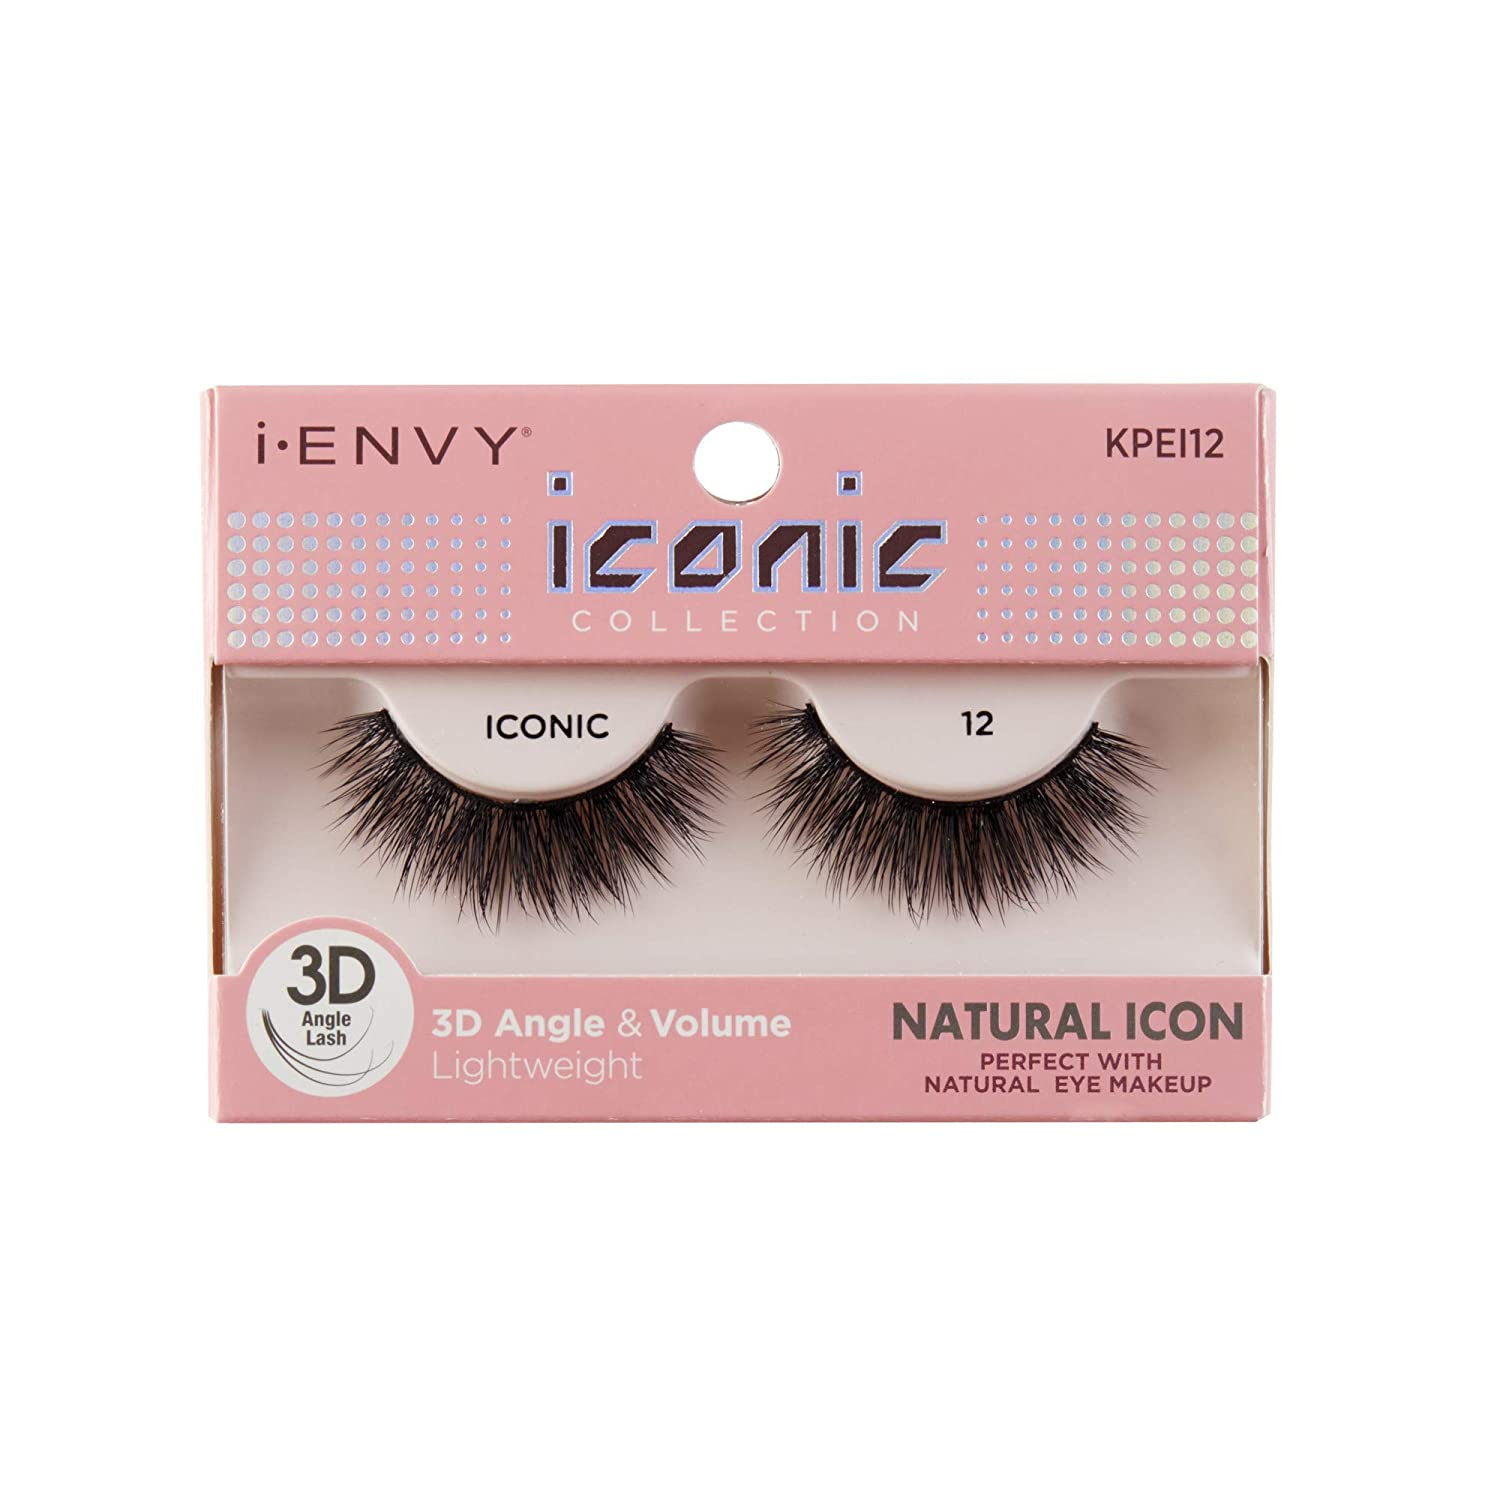 710a9be3cd7 Amazon.com : i Envy by Kiss iconic 3D Angle & Volume Lashes NATURAL ICON 12  : Beauty